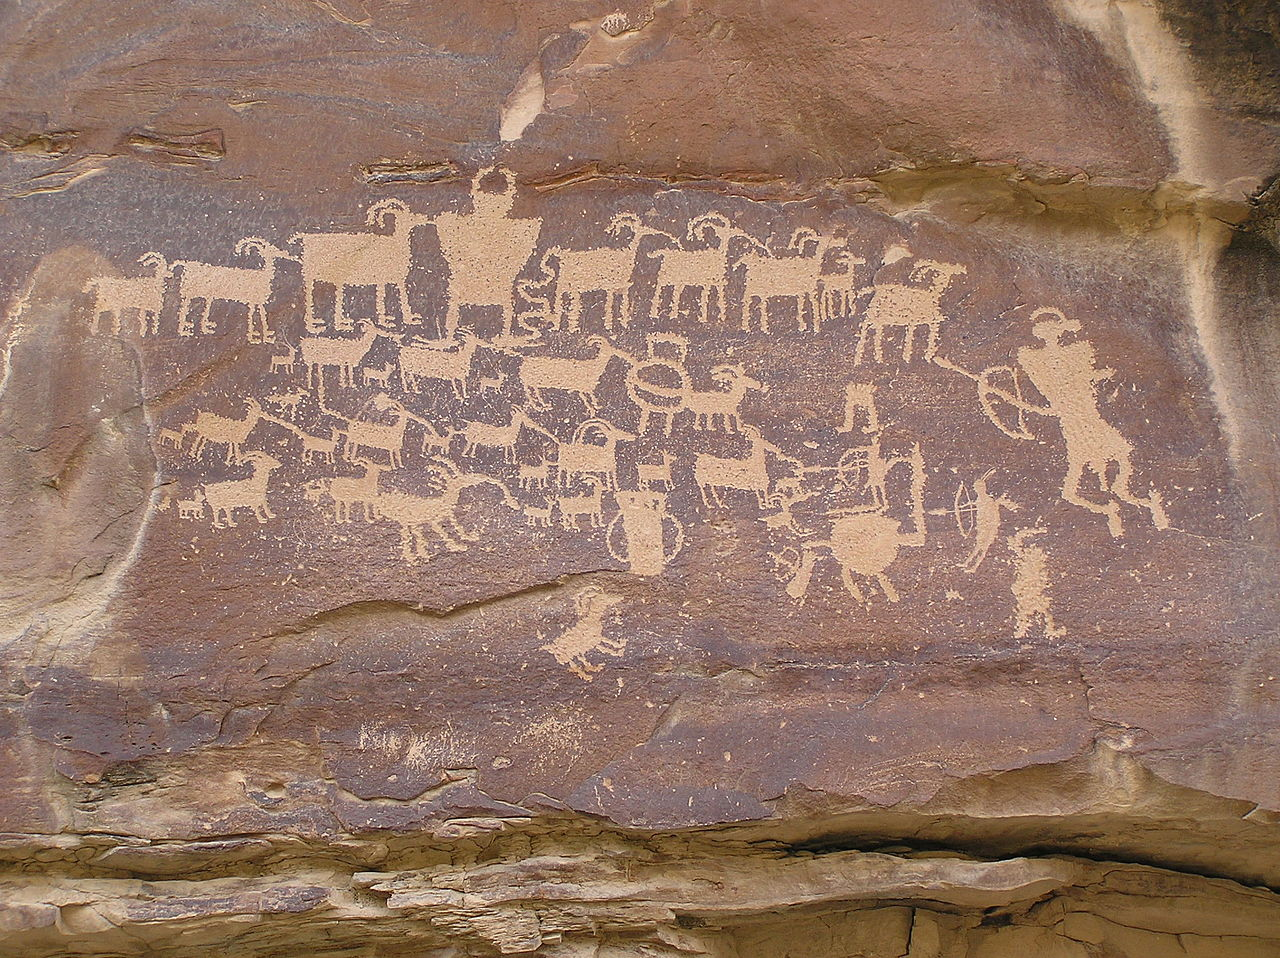 Editorial: 'Priceless' Indian petroglyphs used for target practice